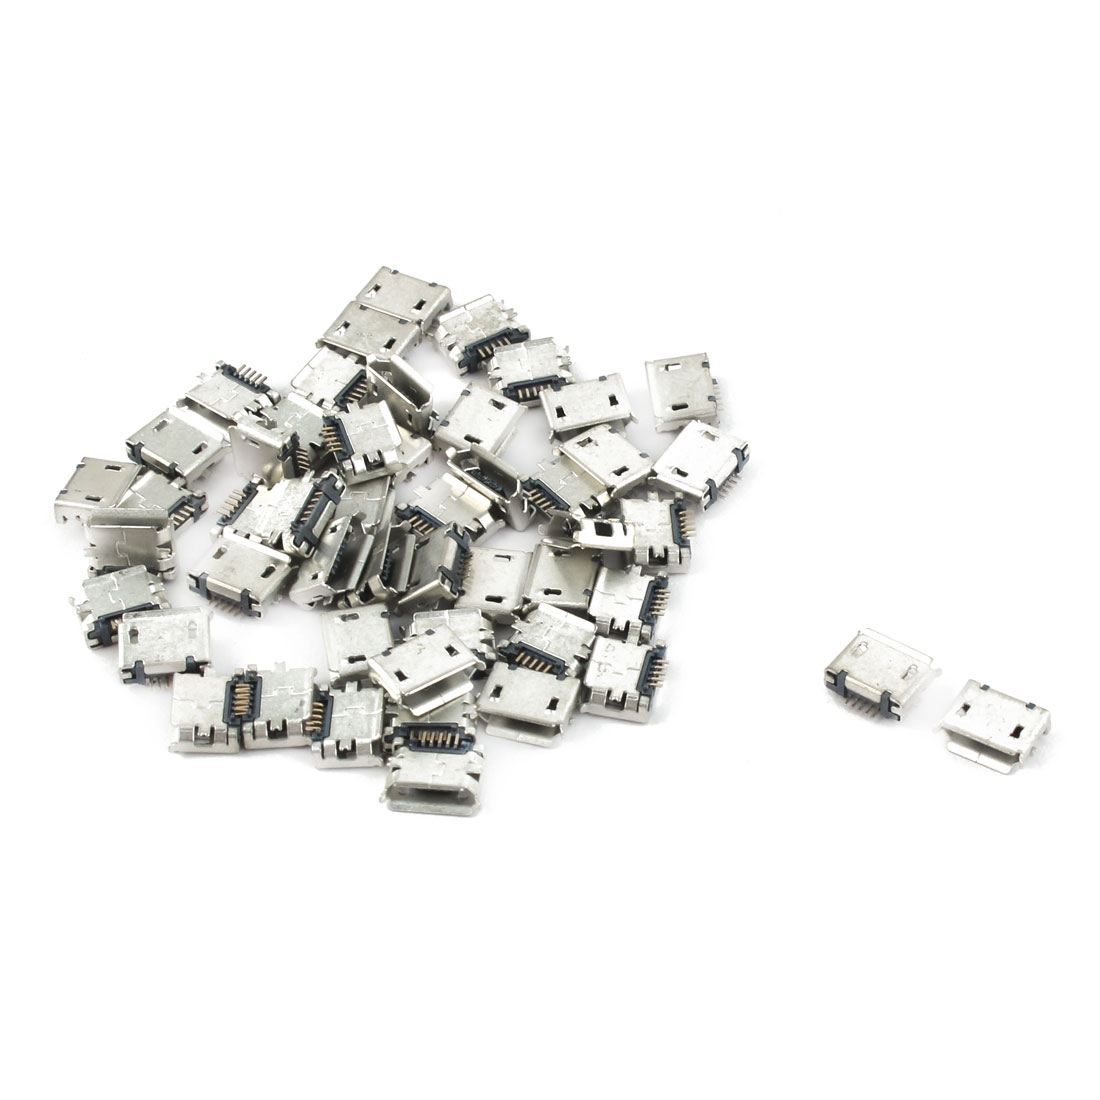 Mobile Phone PCB SMT Micro USB Type B 5Pin Female Socket Adapter Connector 50 Pcs